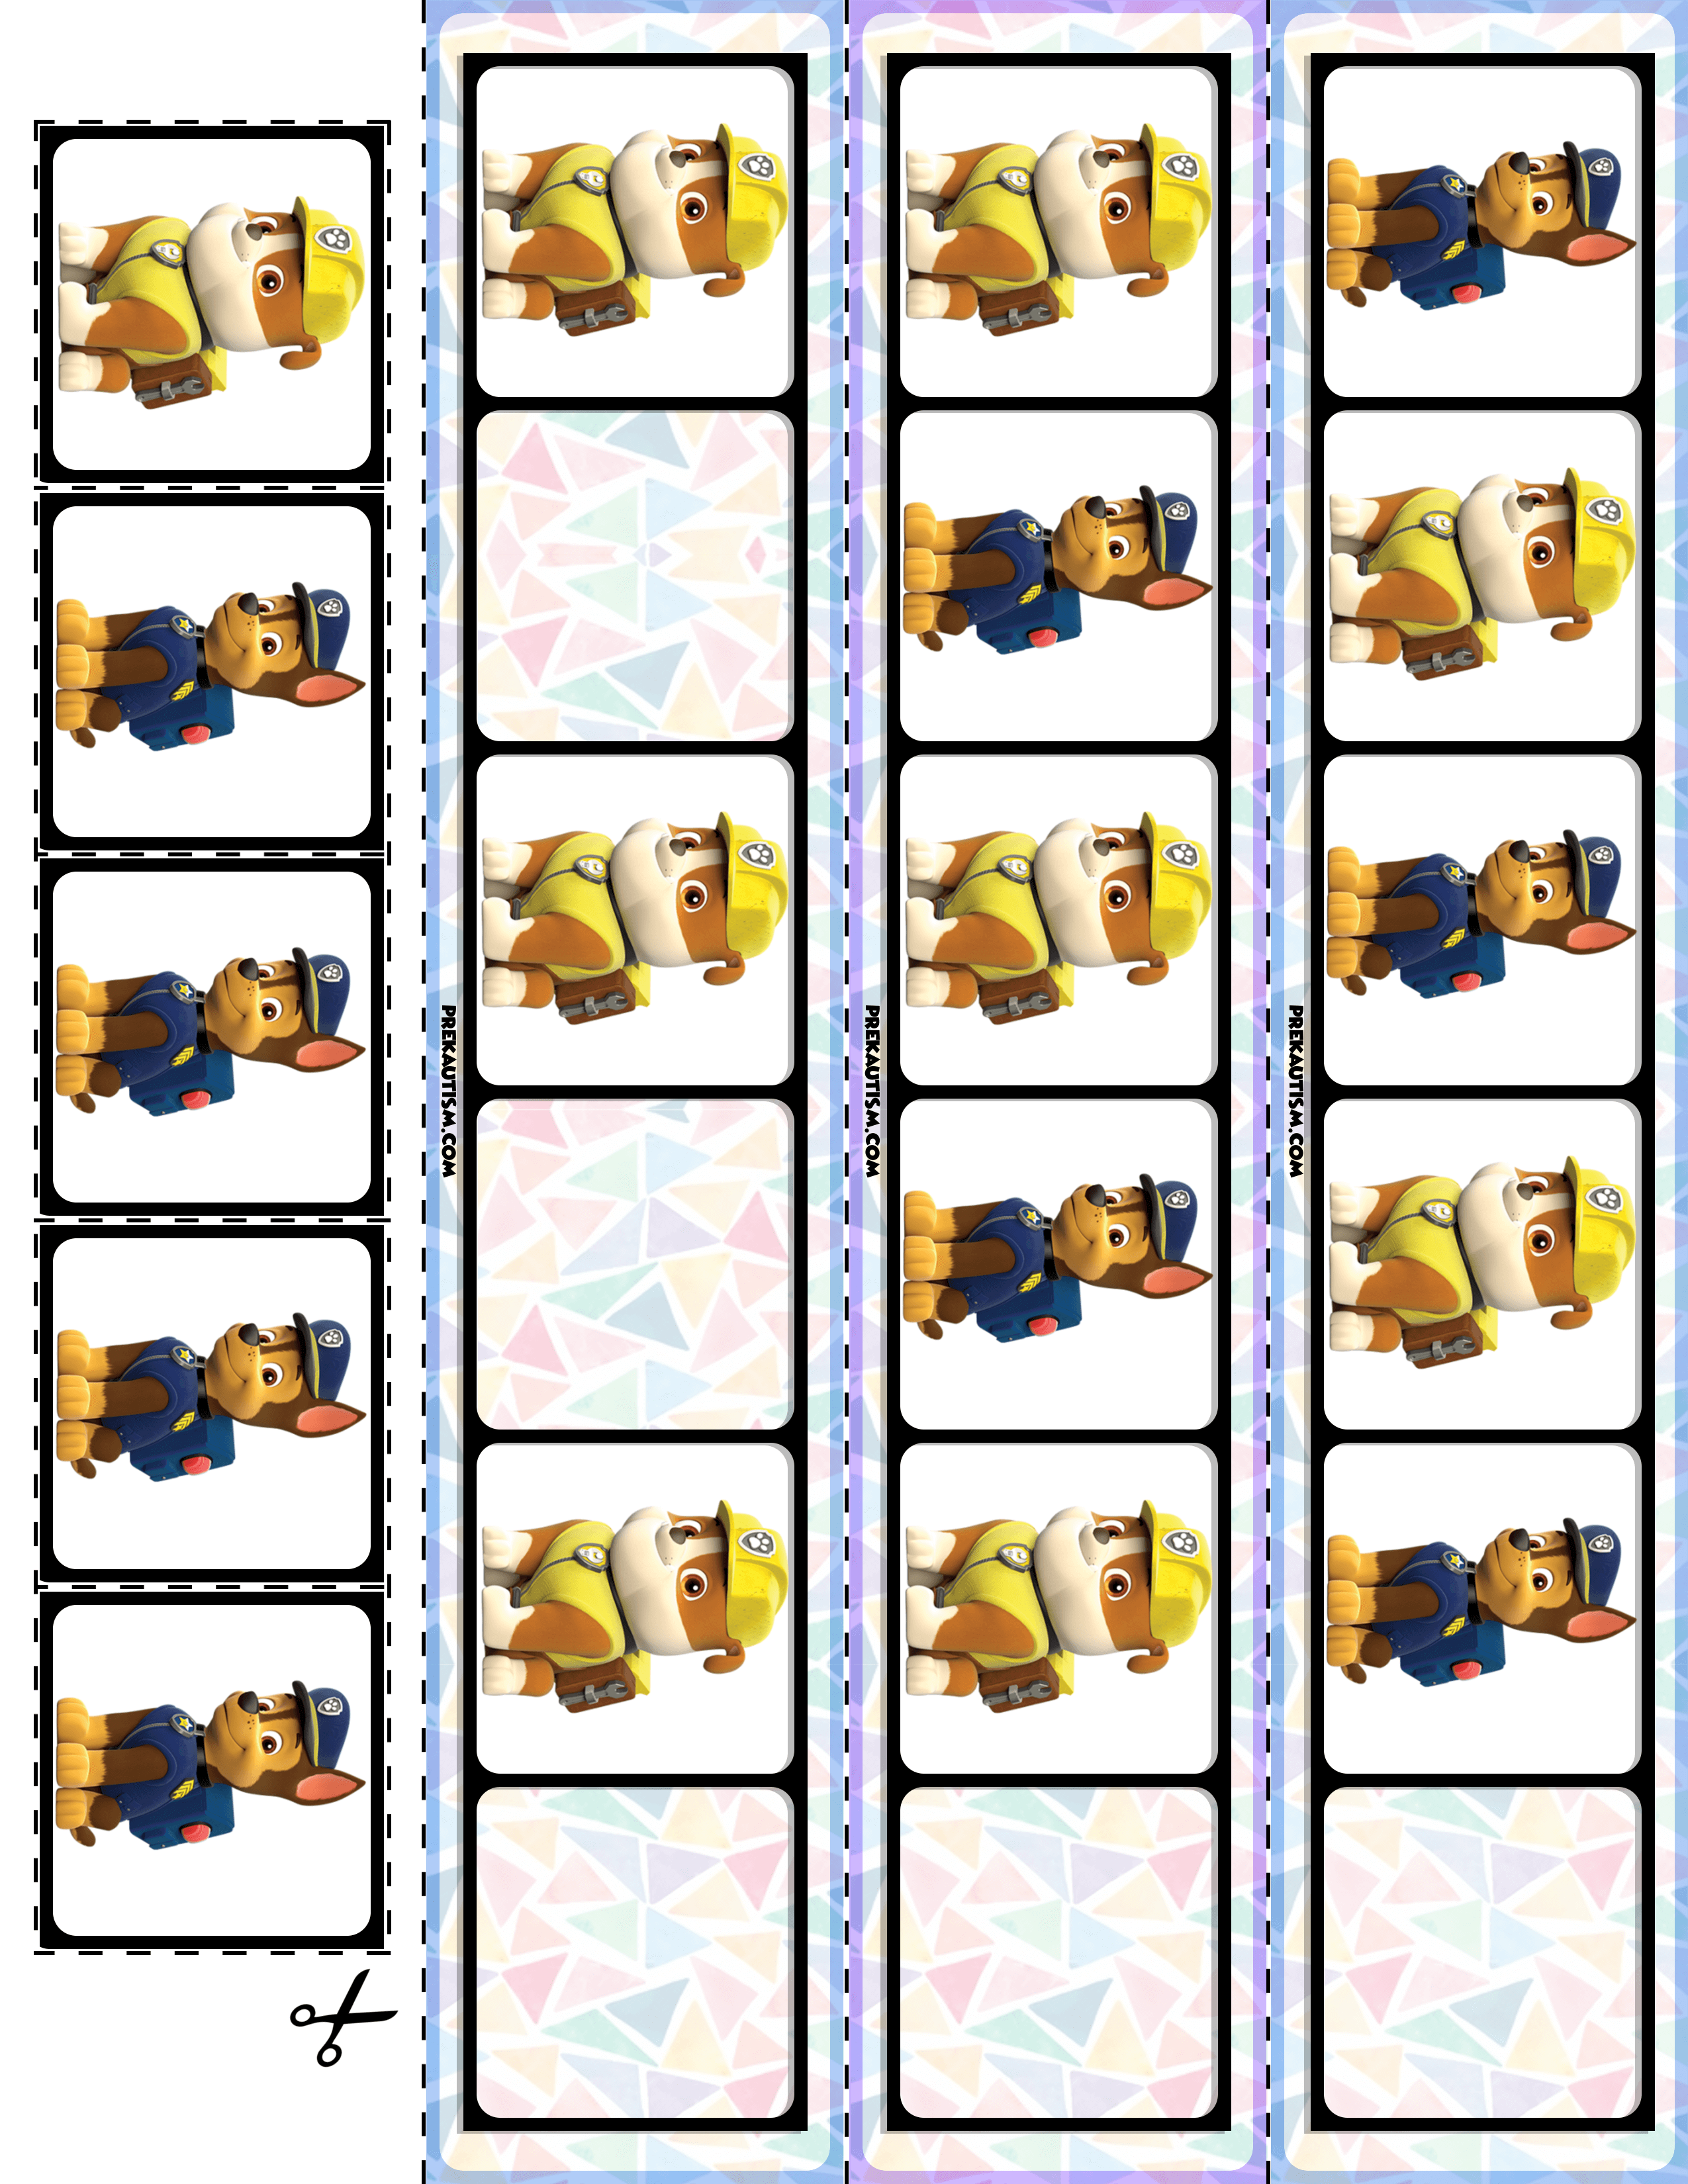 Free Paw Patrol Printable Materials